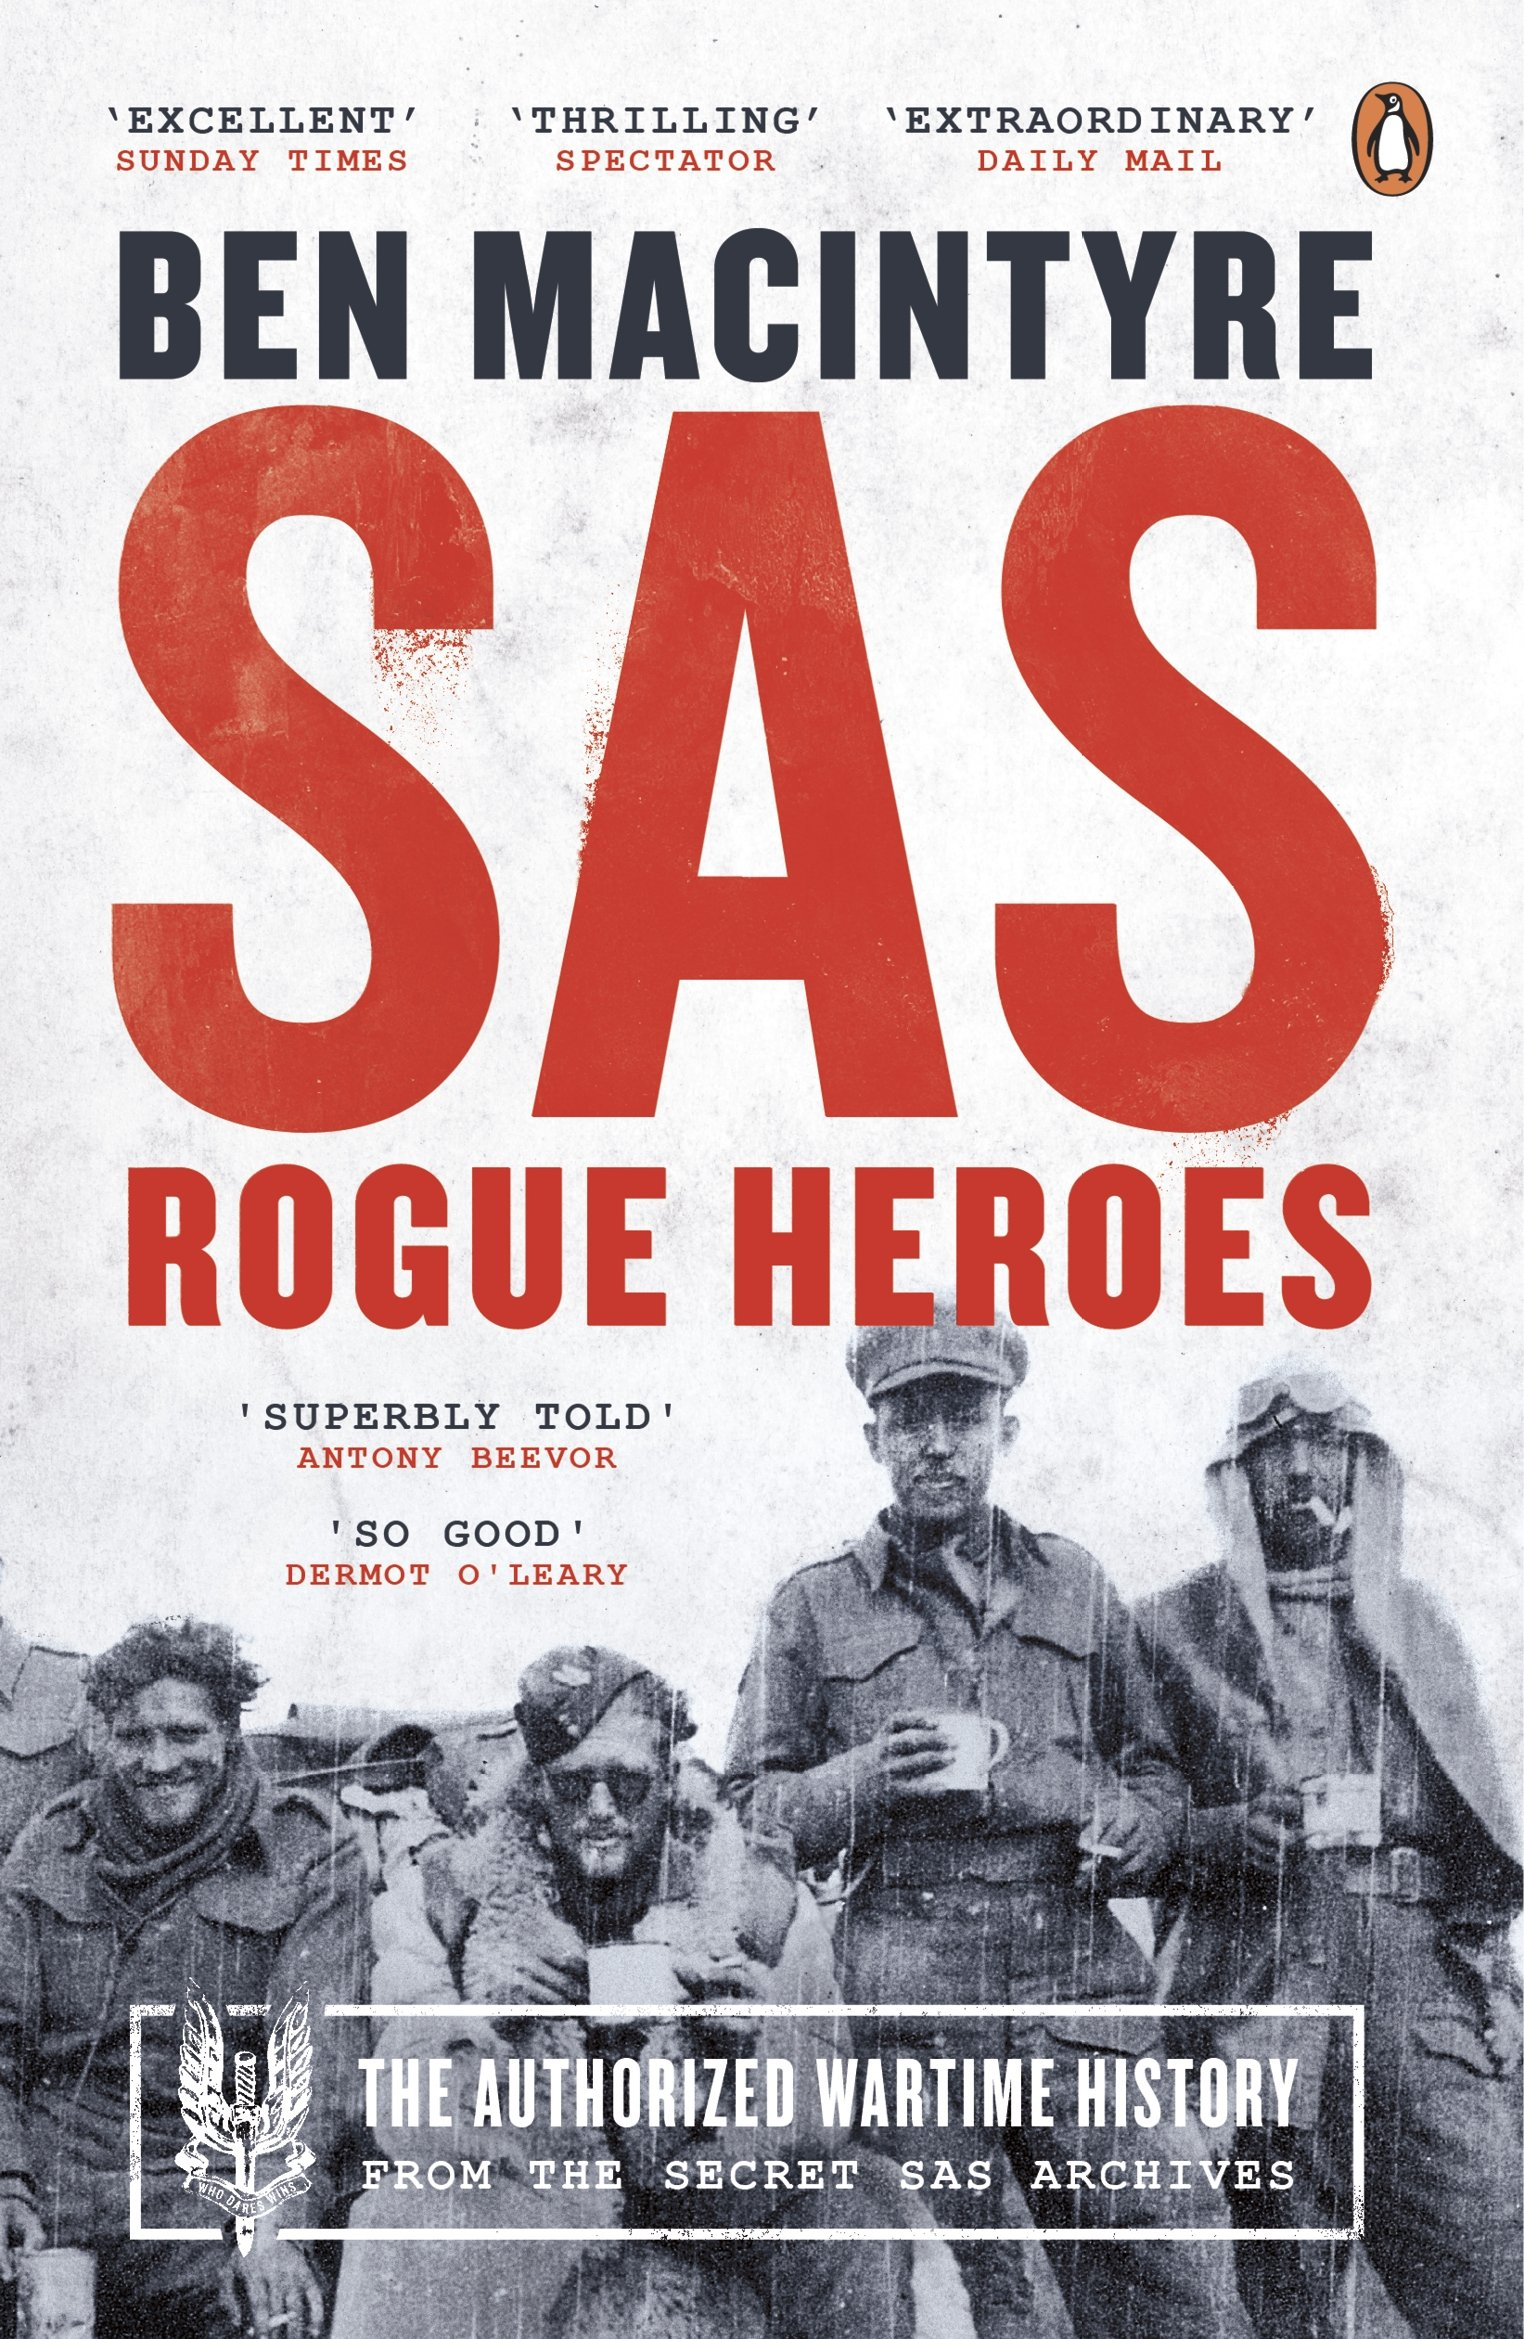 Sale copies of SAS: Rogue Heroes - the Authorized Wartime History by Ben MacIntyre